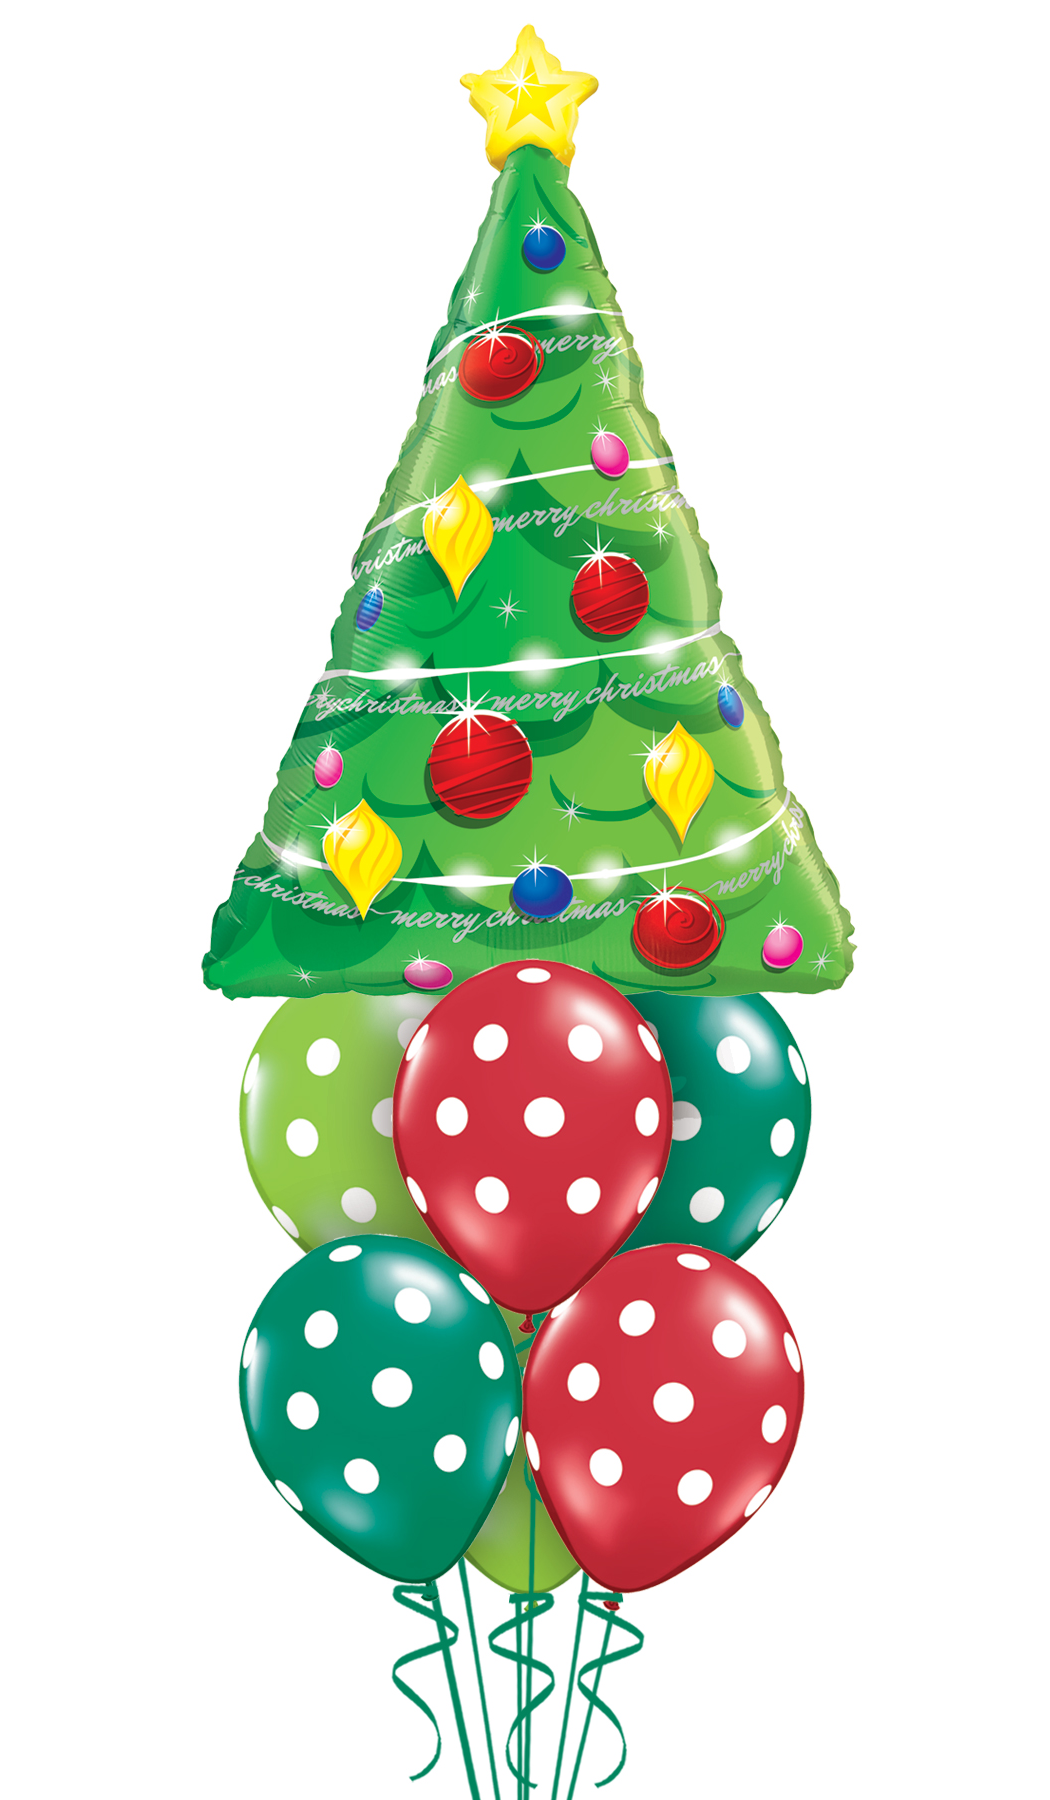 Christmas Tree Balloon.Jumbo Christmas Tree